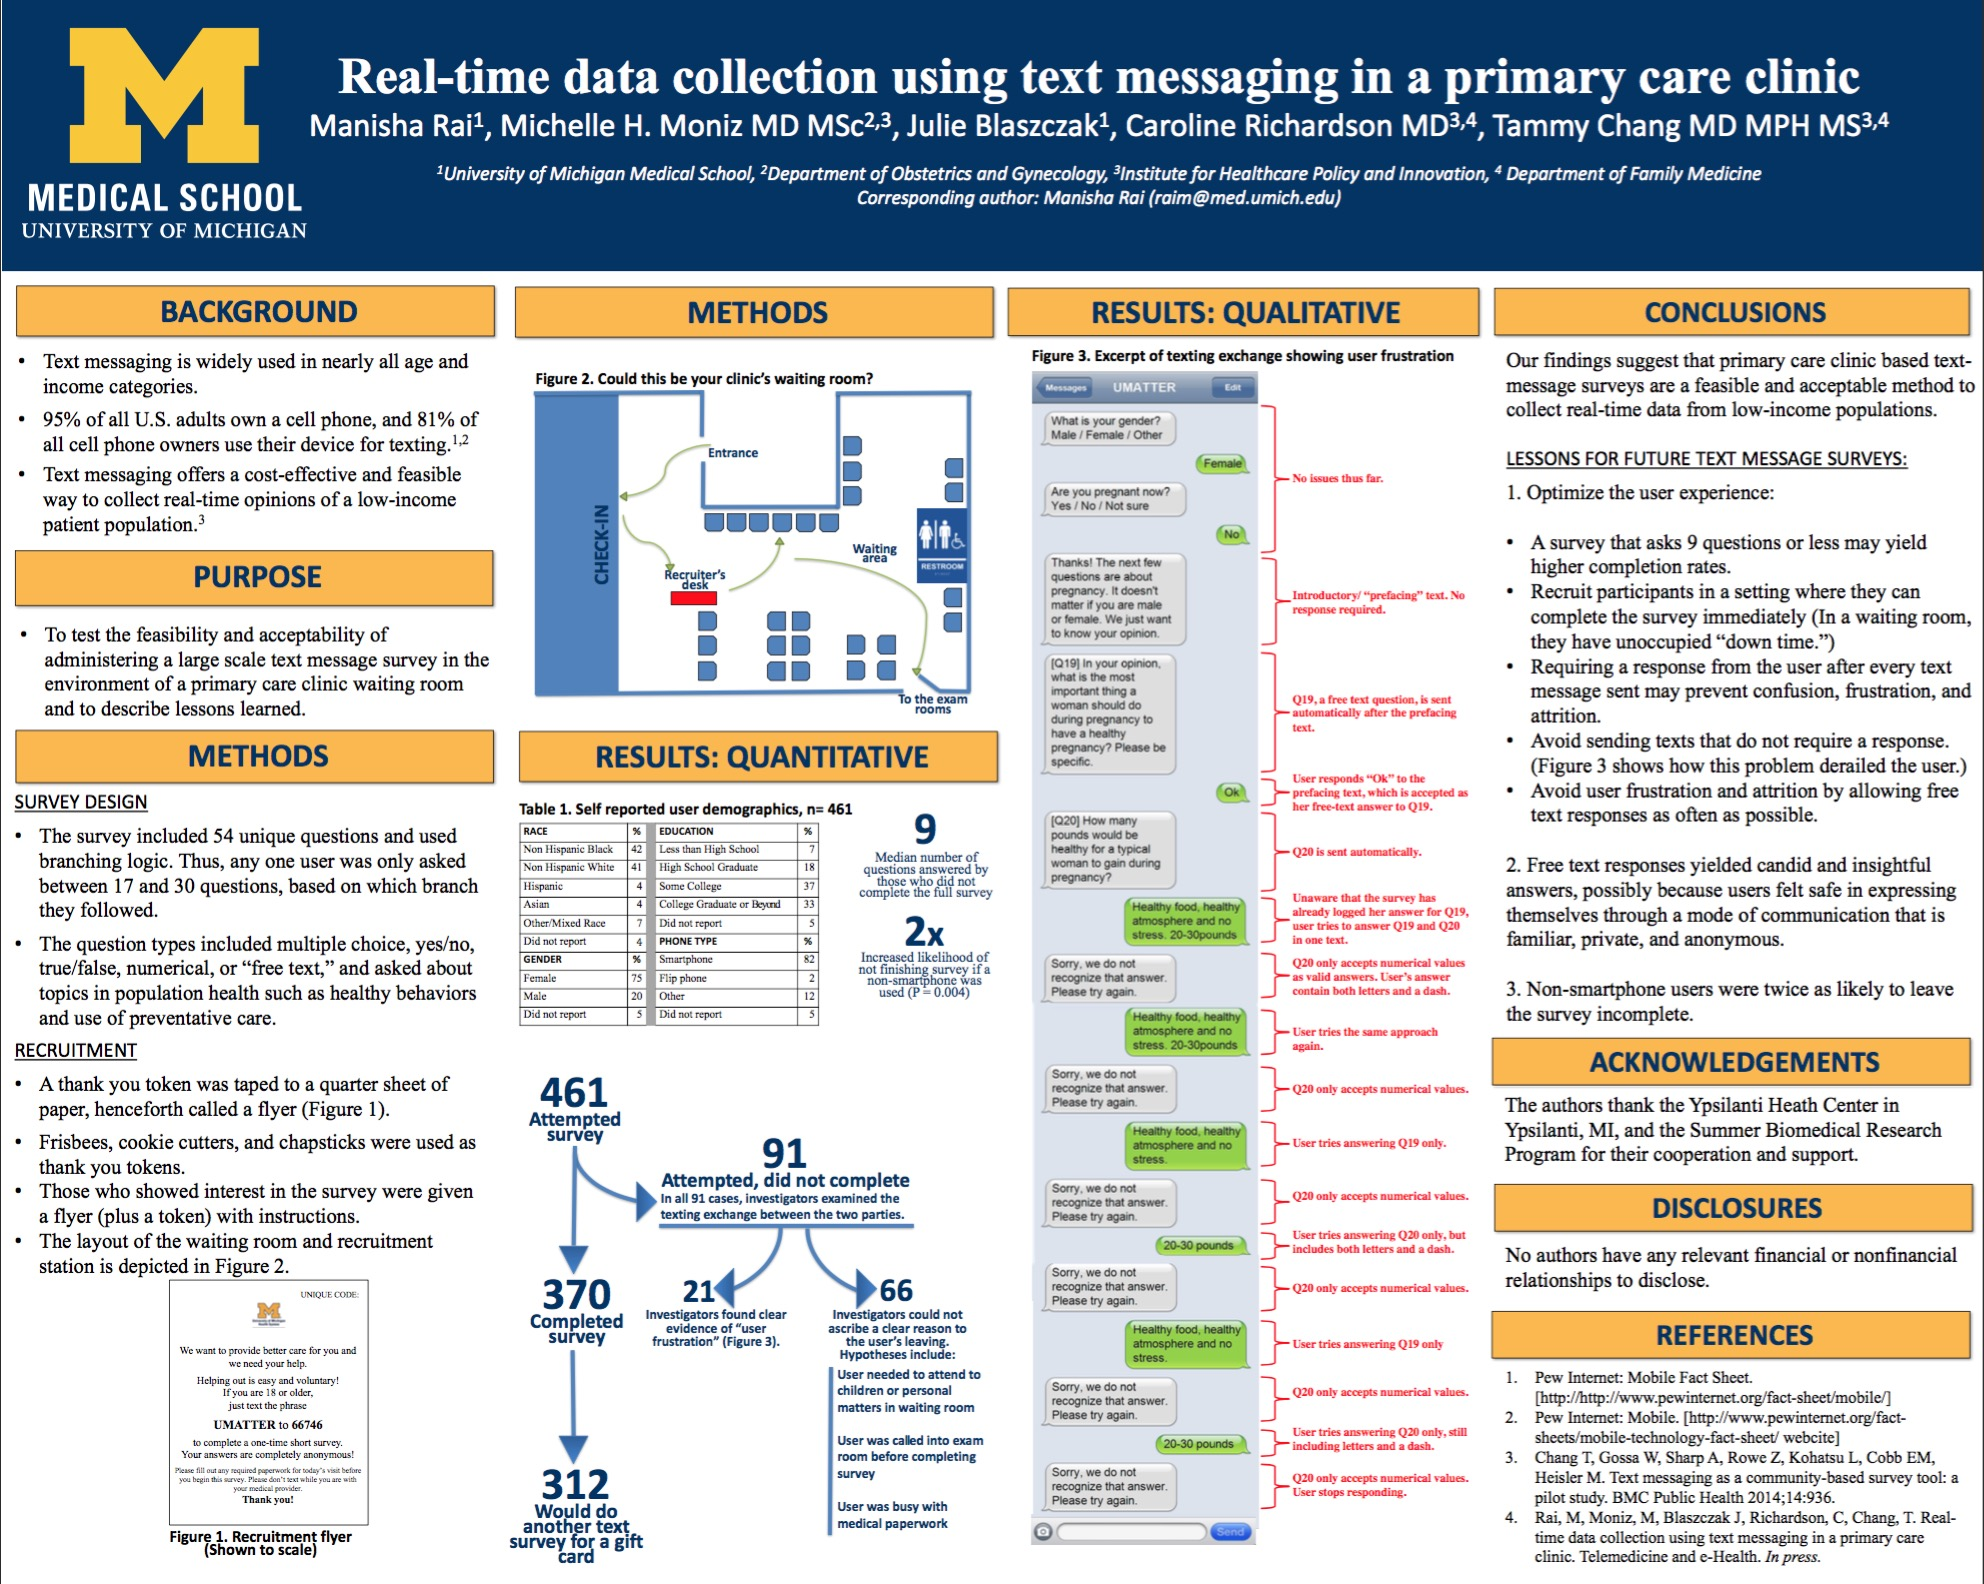 stfm 2017 conference poster by Manisha Rai Real-time data collection using text messaging in a primary care clinic